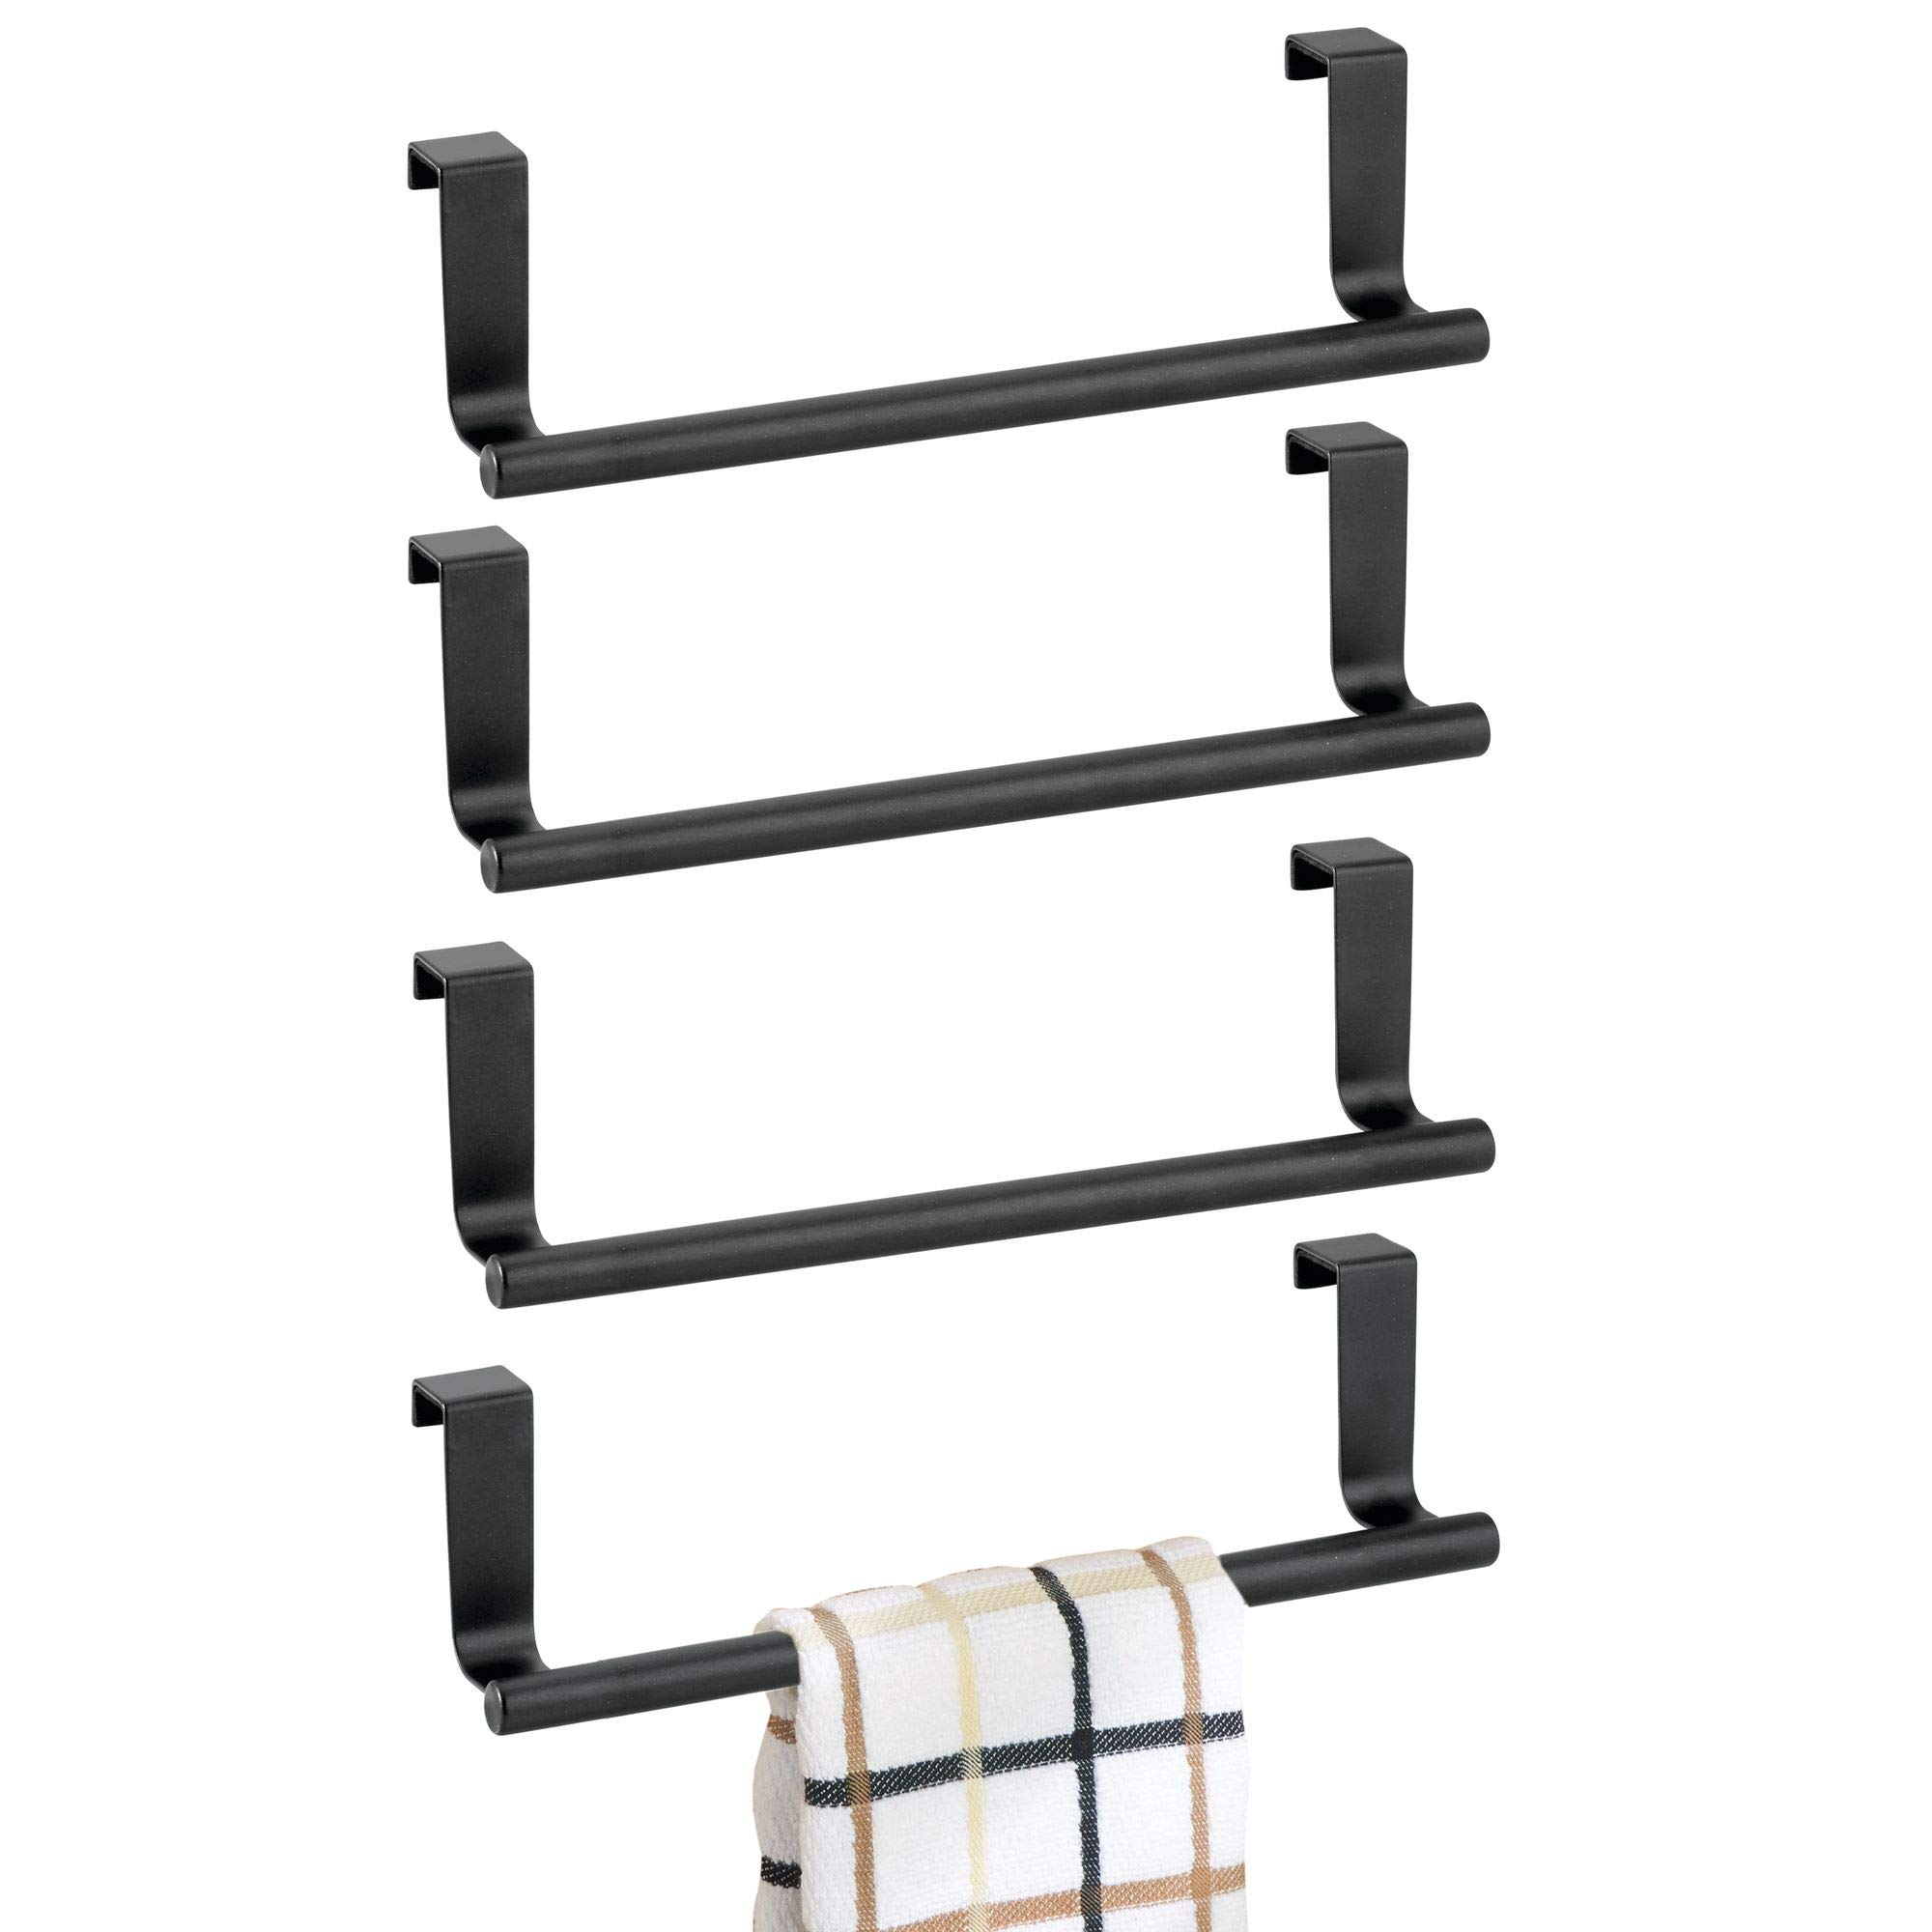 mDesign Decorative Kitchen Over Cabinet Stainless Steel Towel Bar - Hang on Inside or Outside of Doors, Storage and Display Rack for Hand, Dish, and Tea Towels - 9'' Wide, Pack of 4, Matte Black